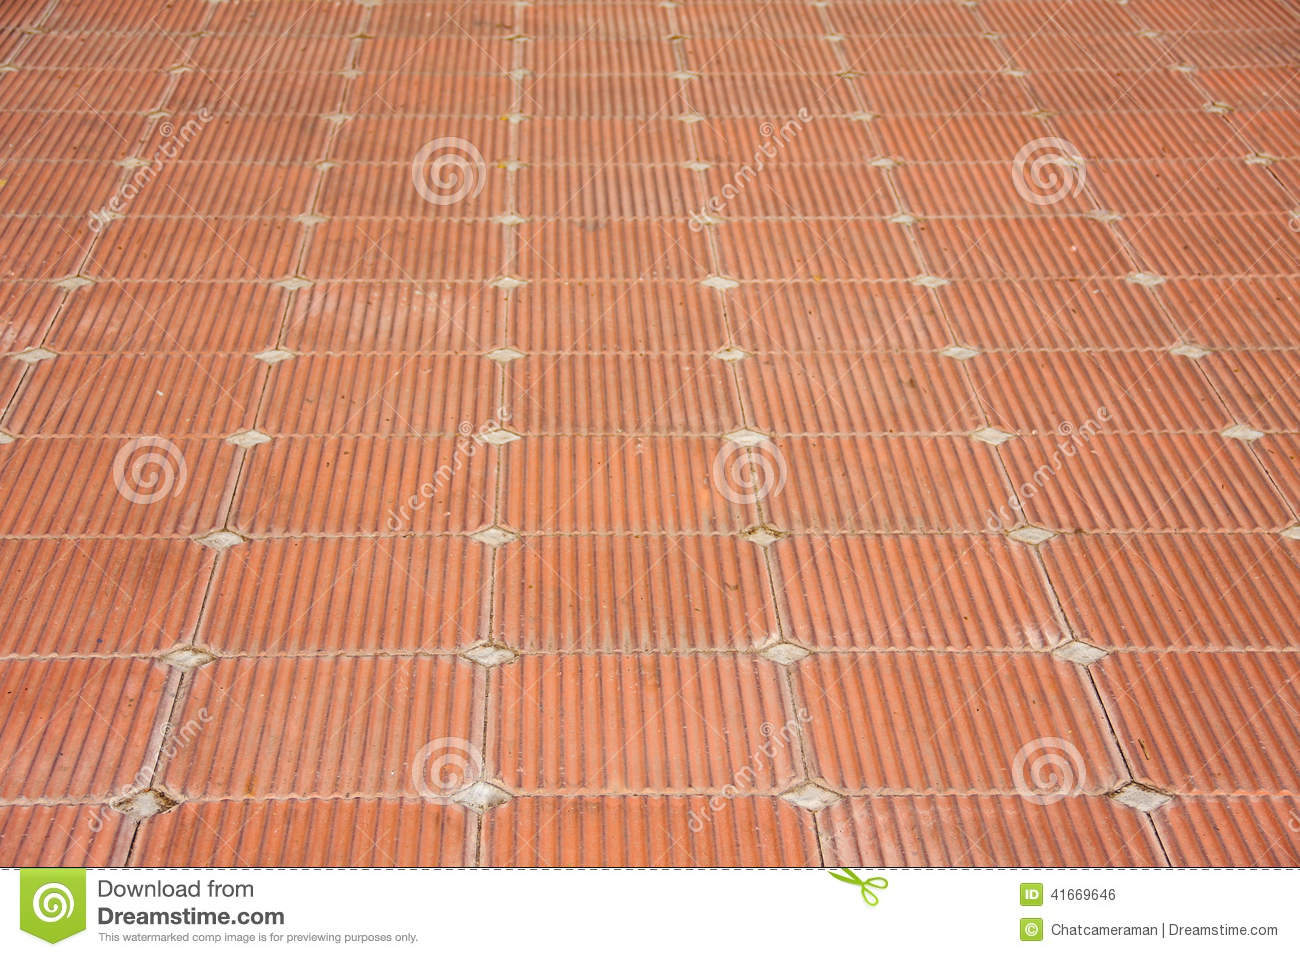 Patio of clay brick tile floor stock photo image of decor patio patio of clay brick tile floor dailygadgetfo Images